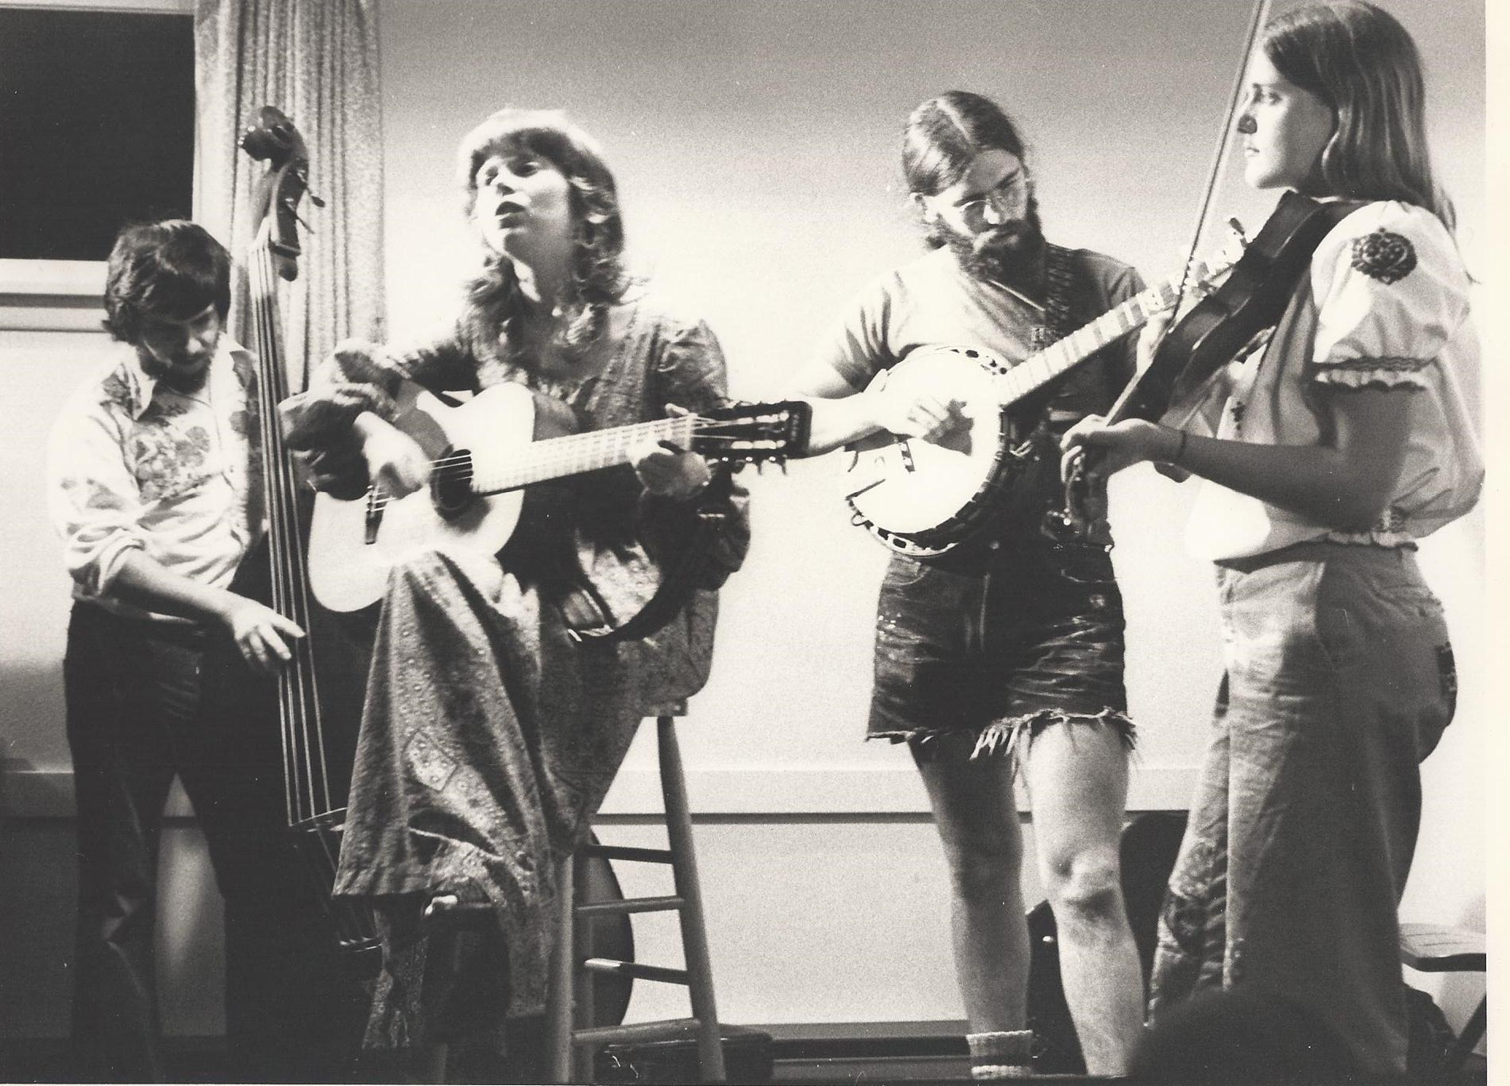 I moved to Bellingham in 1976. I worked with the Whatcom Museum to collect songs about the Northwest, resulting in The Rainy Day Songbook and cassette. Laura Smith, Jim Zito and I were The Rainy Day Band, specializing in Northwest songs. Great fun!